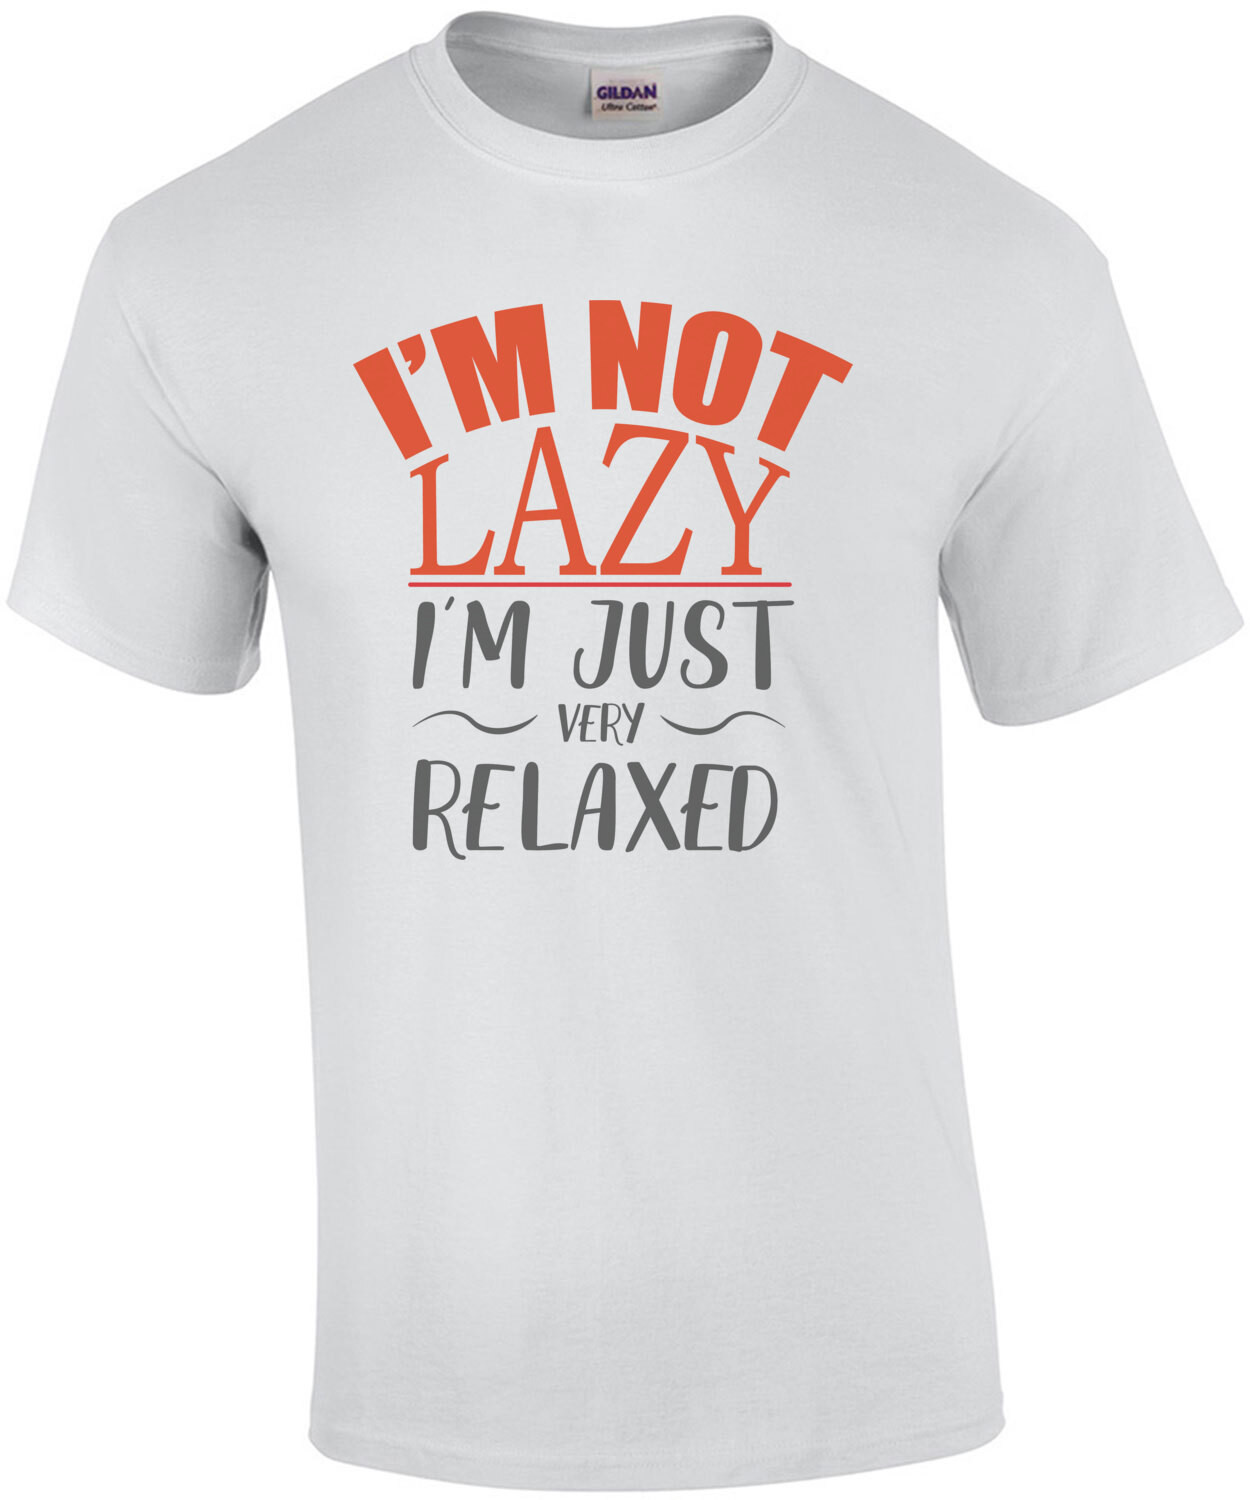 I'm not lazy - I'm just very relaxed - funny t-shirt